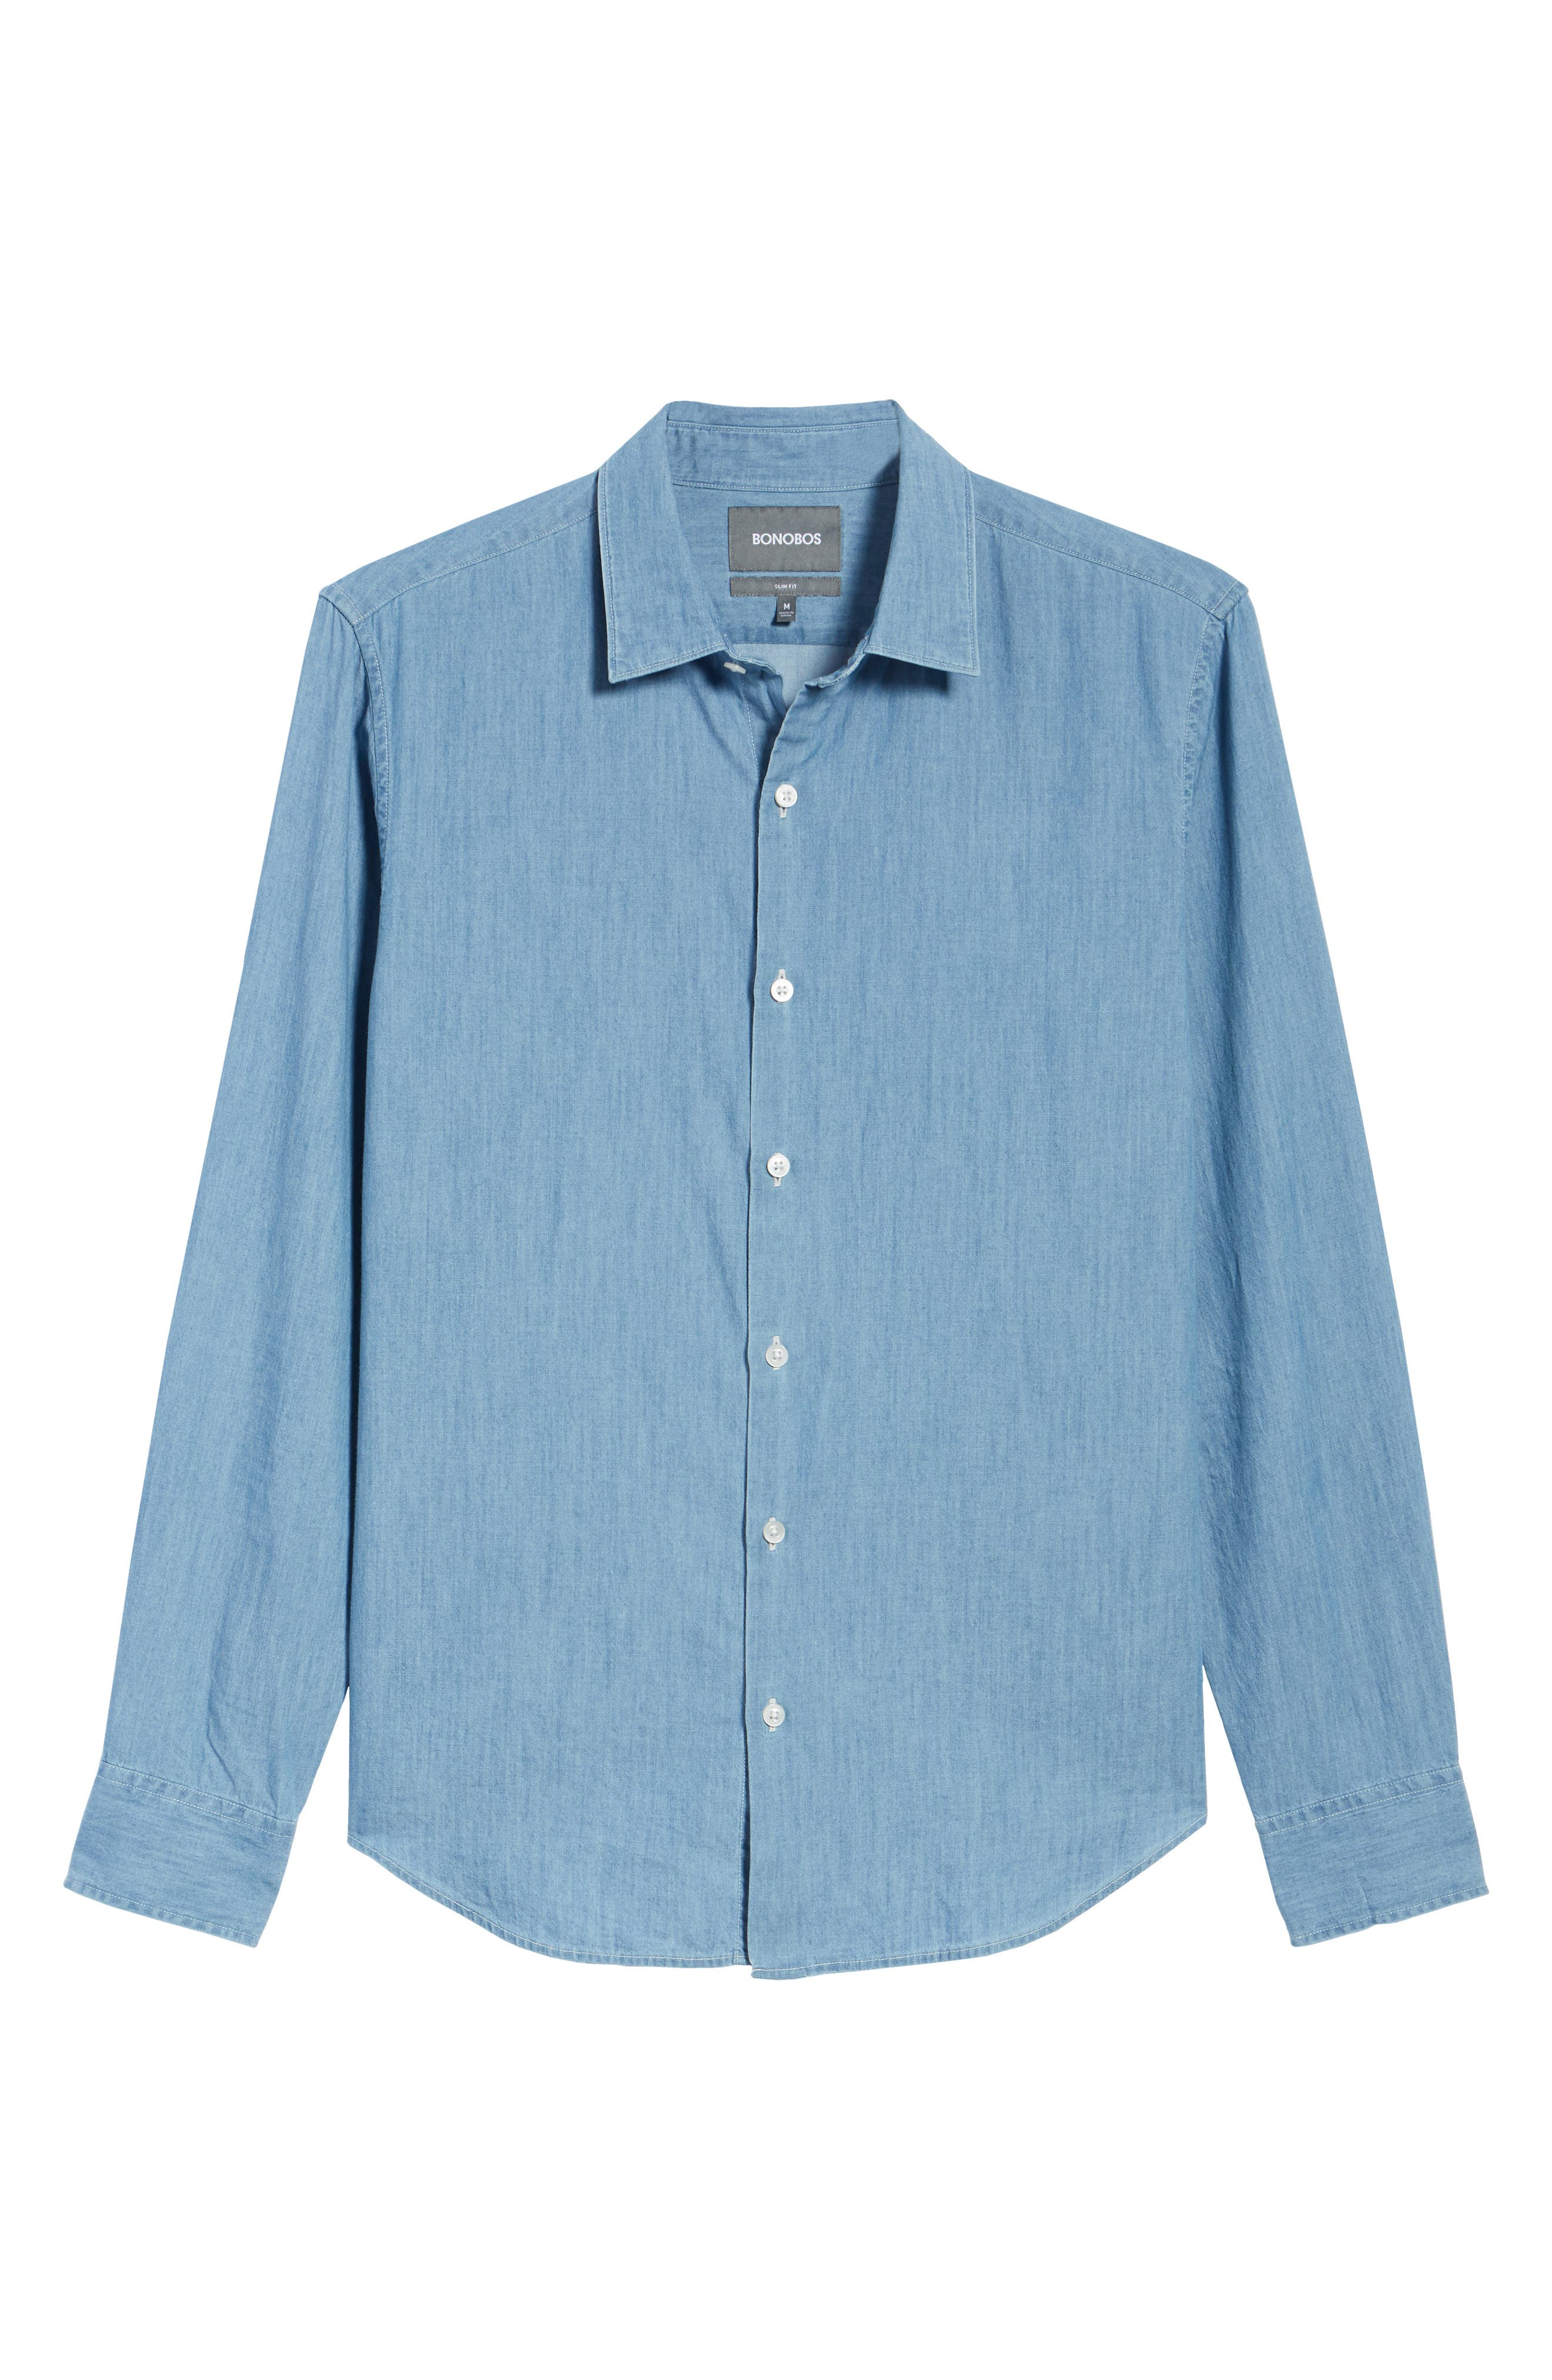 Unbutton Down 2.0 Slim Fit Chambray Sport Shirt,                             Alternate thumbnail 6, color,                             SOLID CHAMBRAY